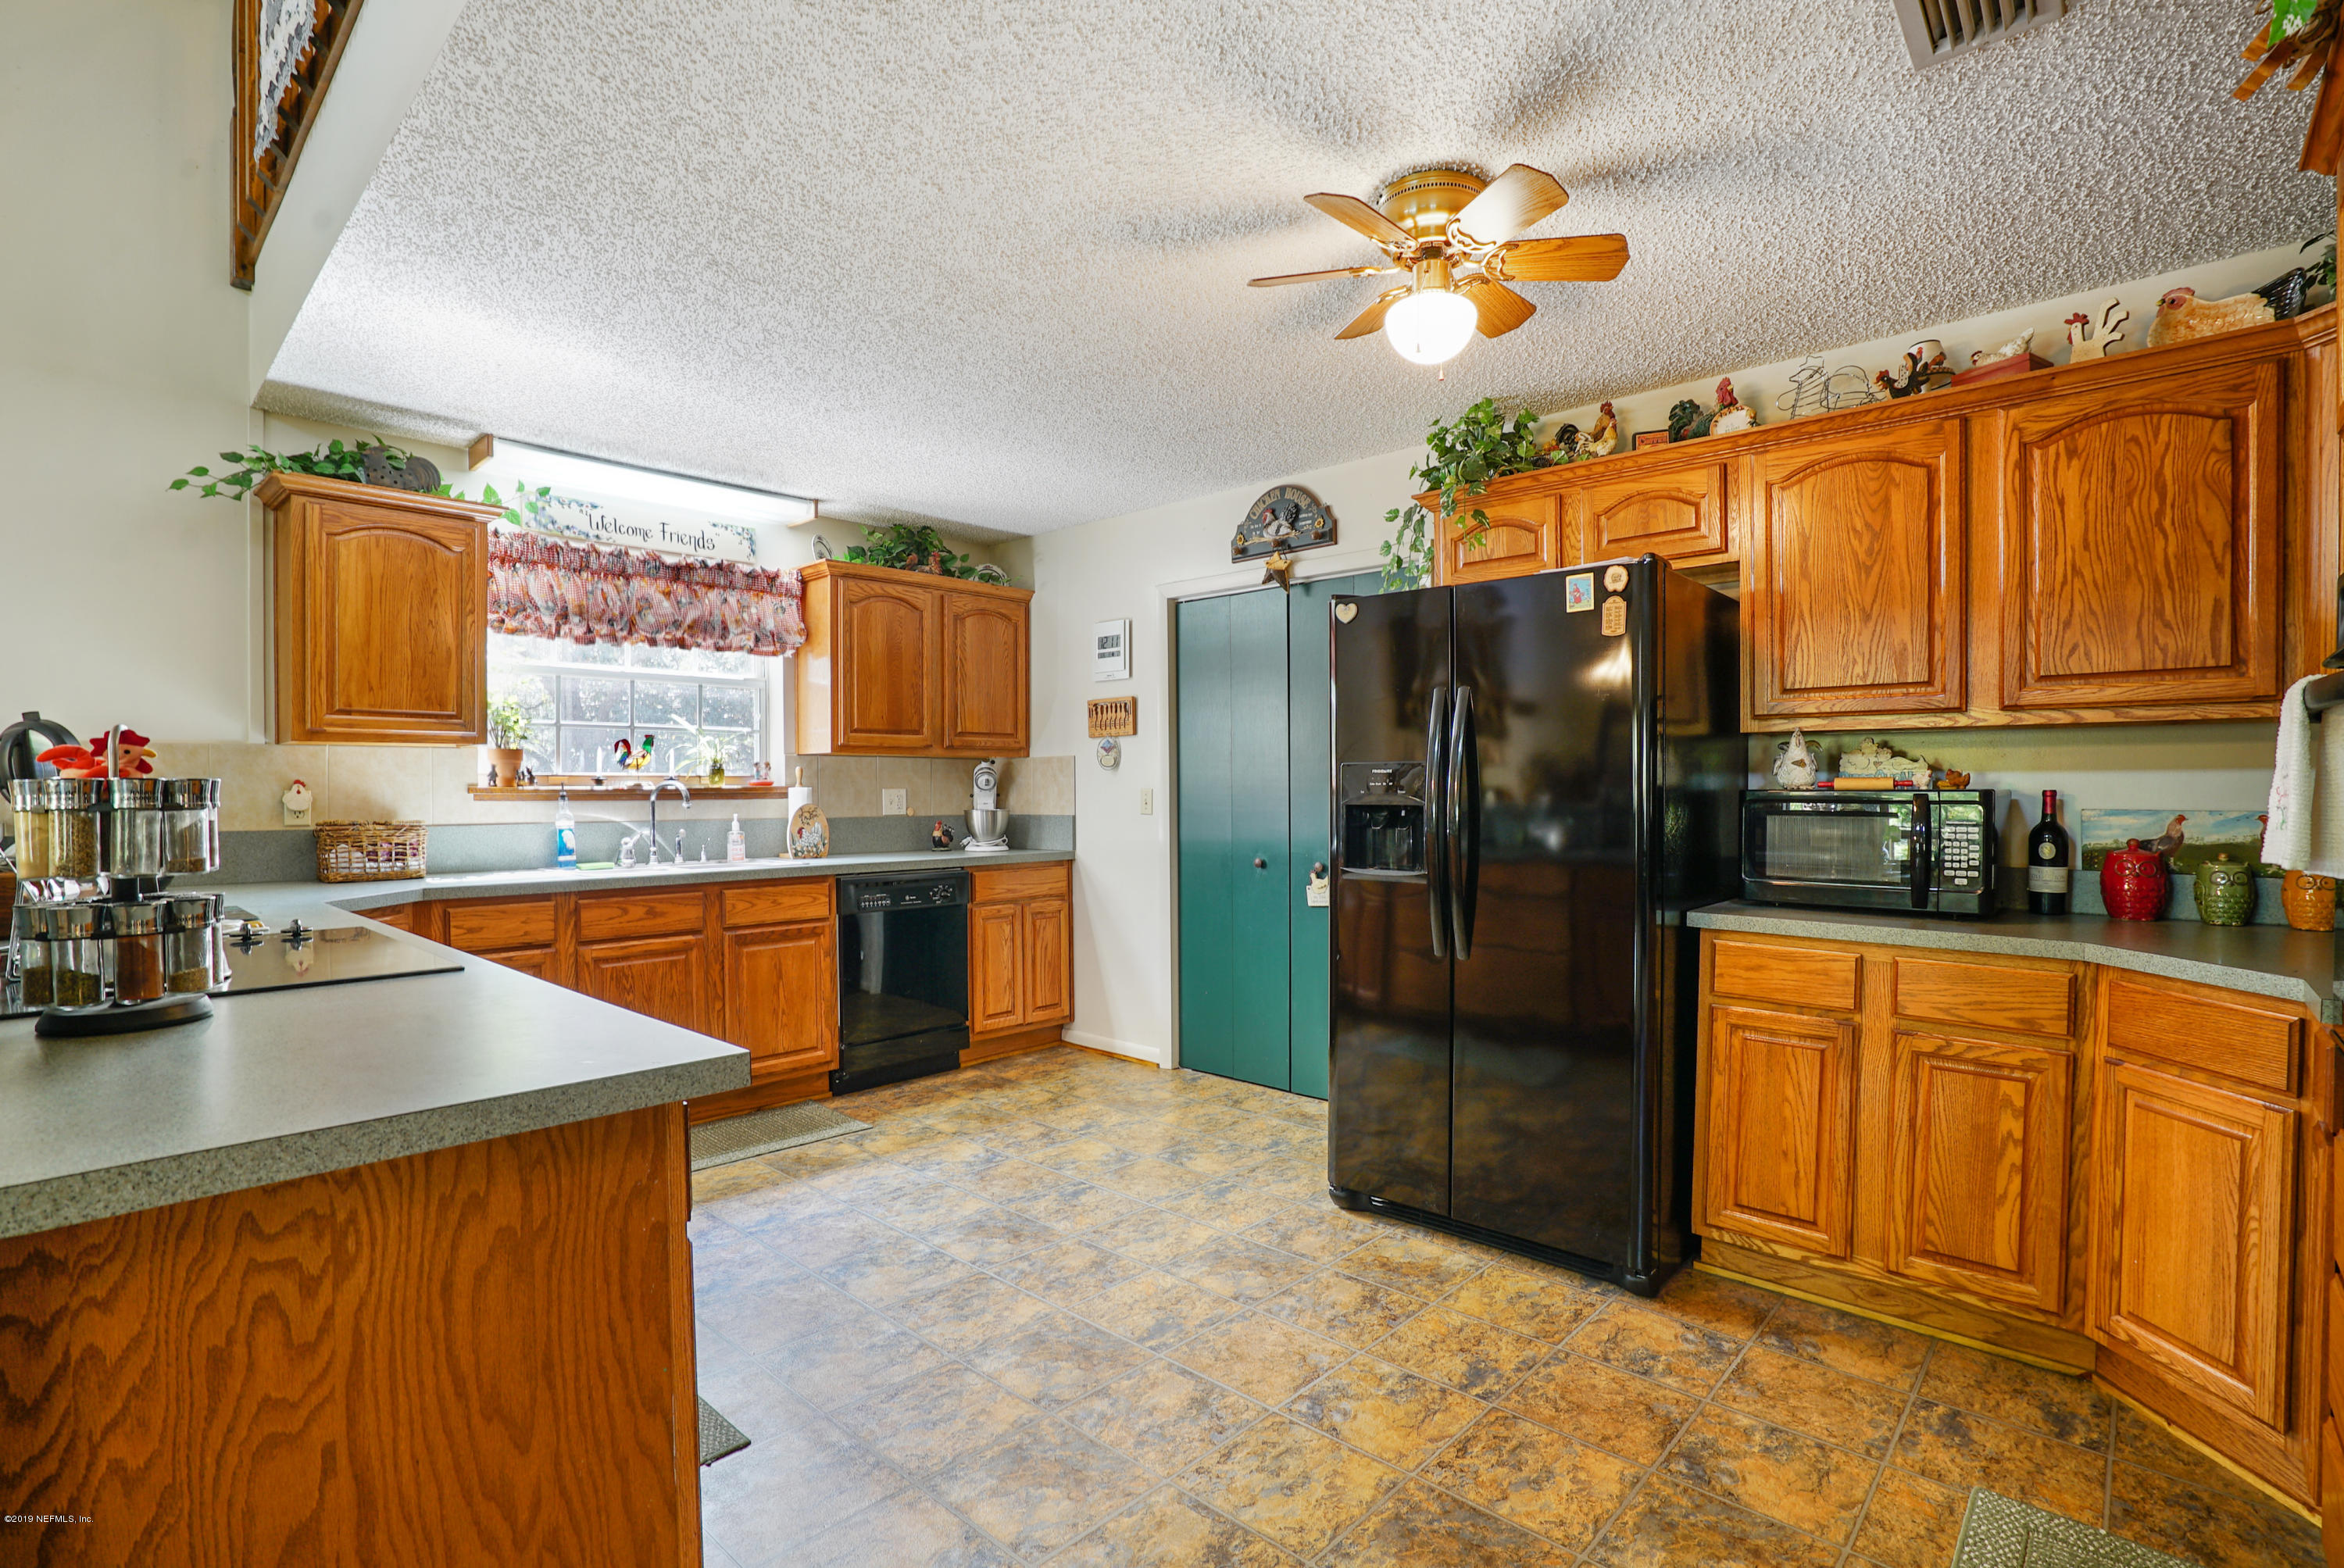 4380 BANKS, MIDDLEBURG, FLORIDA 32068, 3 Bedrooms Bedrooms, ,2 BathroomsBathrooms,Residential - single family,For sale,BANKS,986798